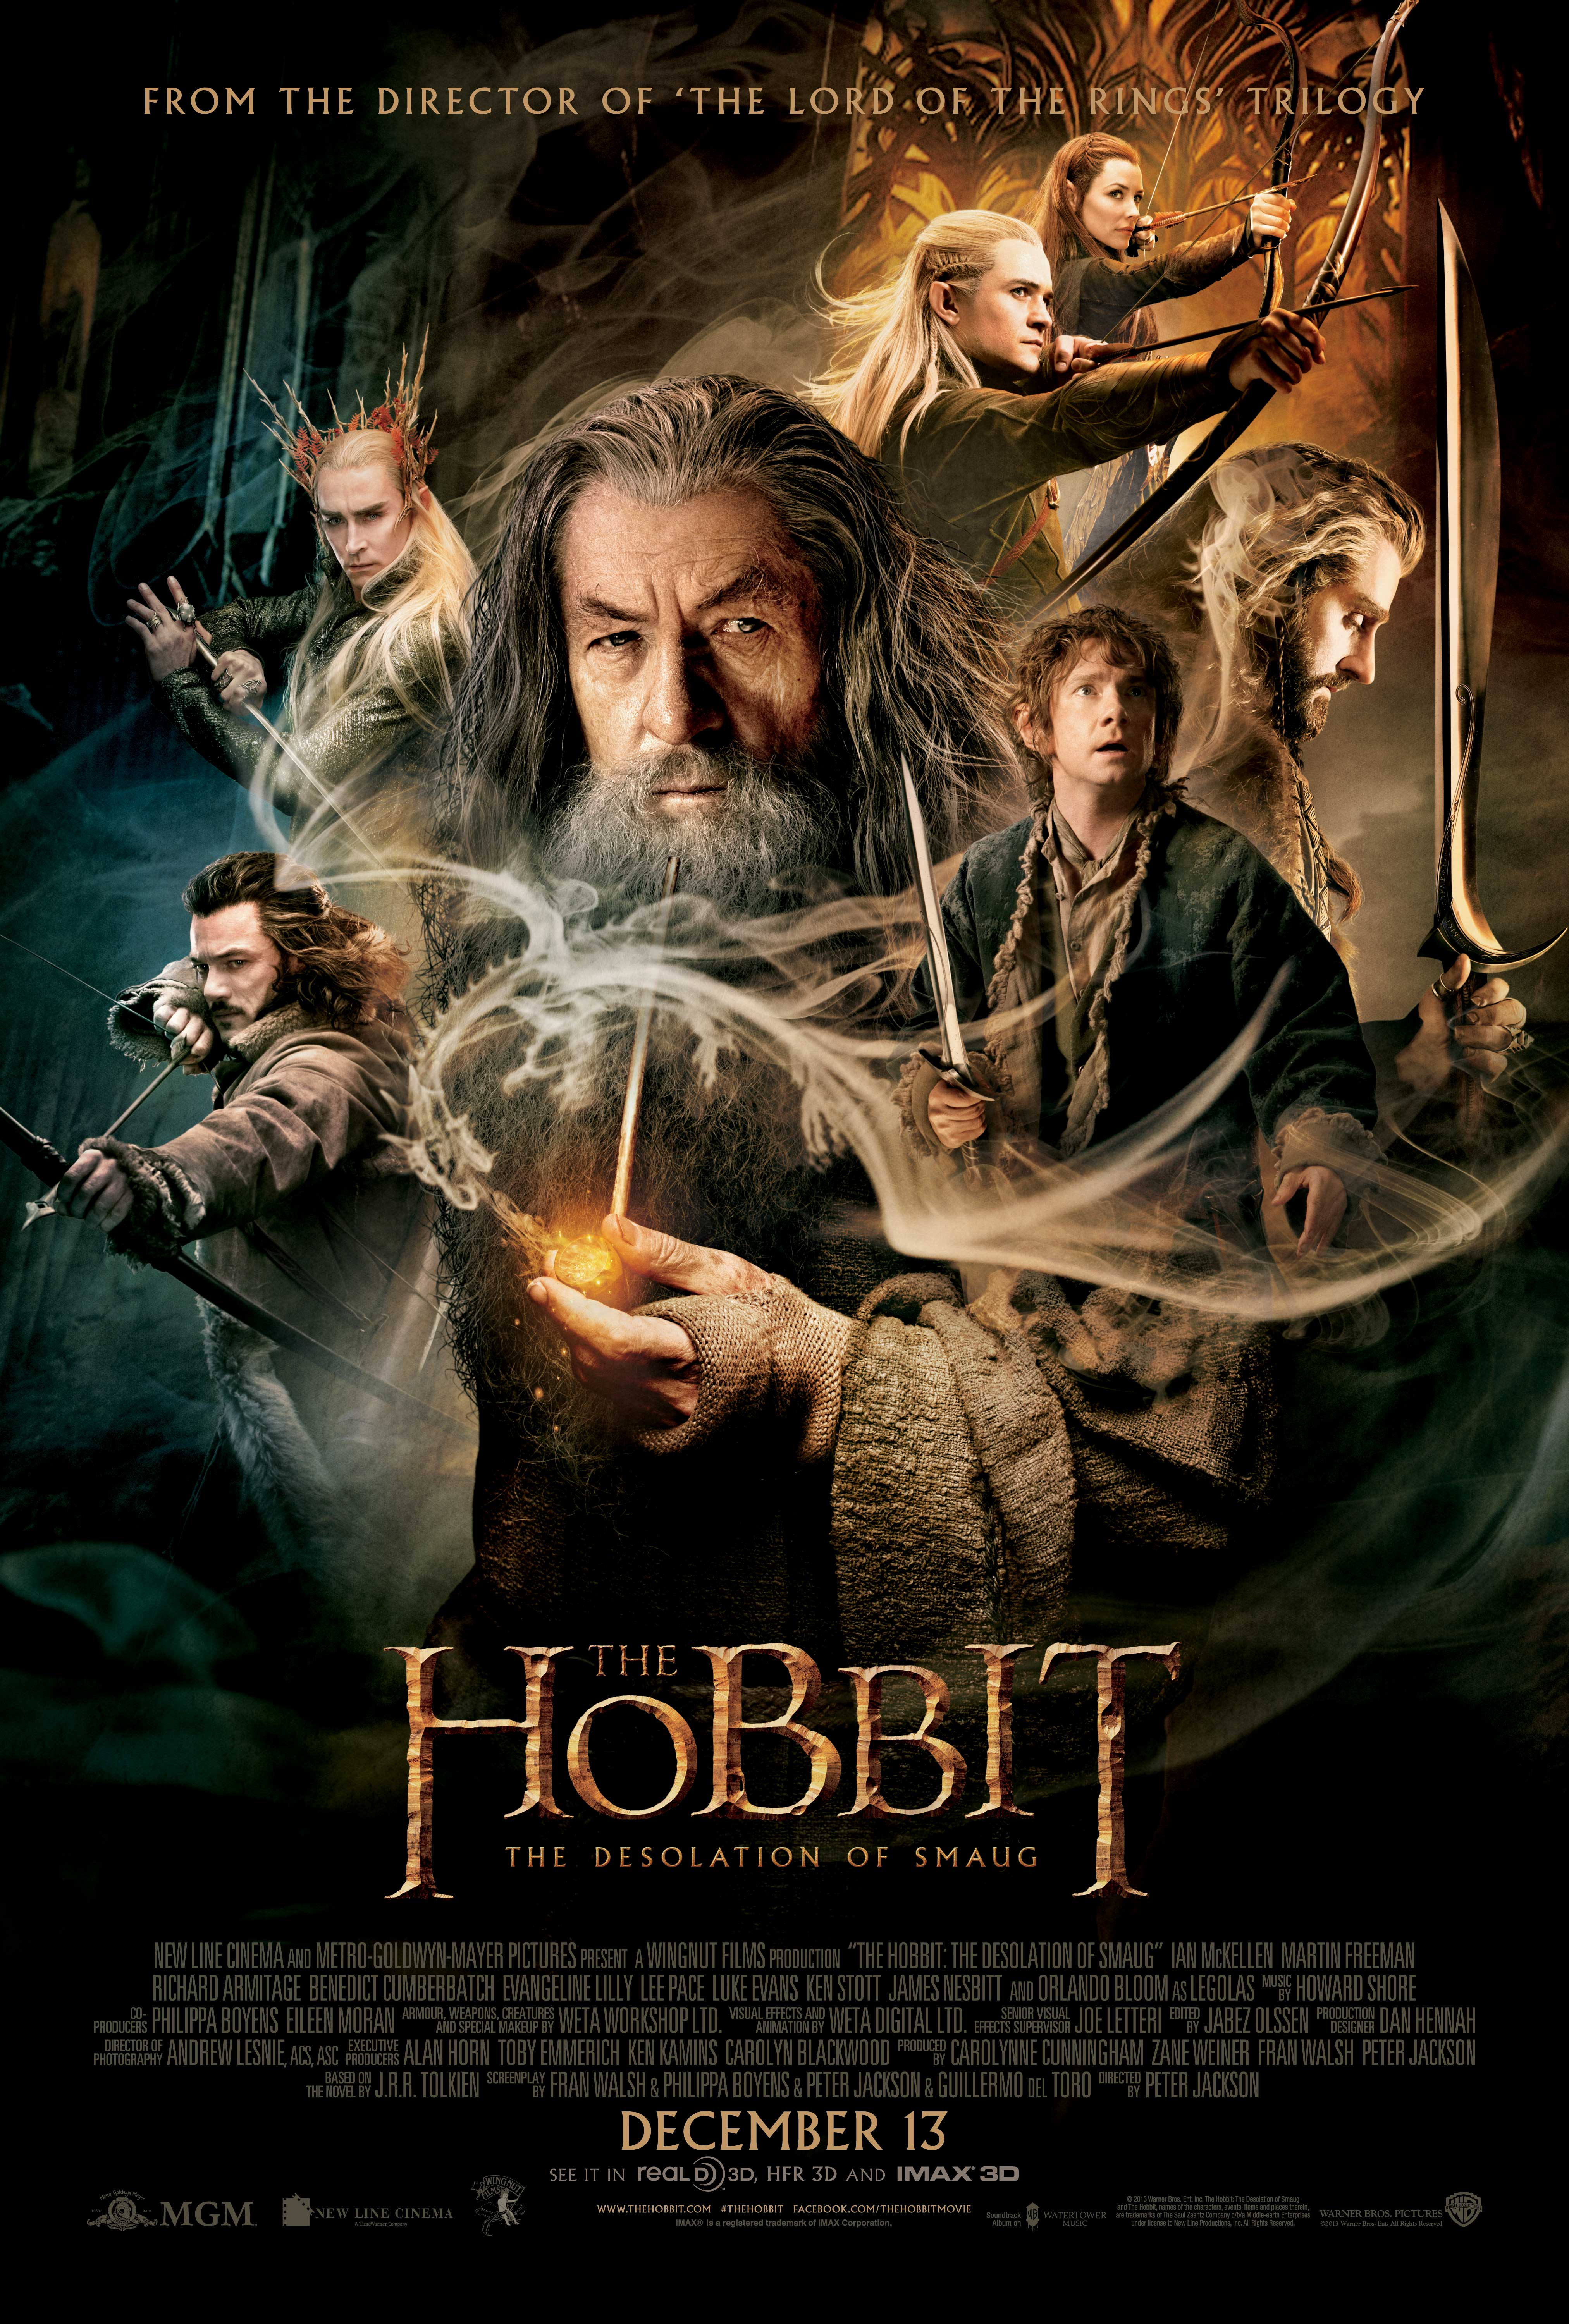 download film The Hobbit: The Desolation of Smaug brrip dvdrip mkv mp4 indowebster mediafire